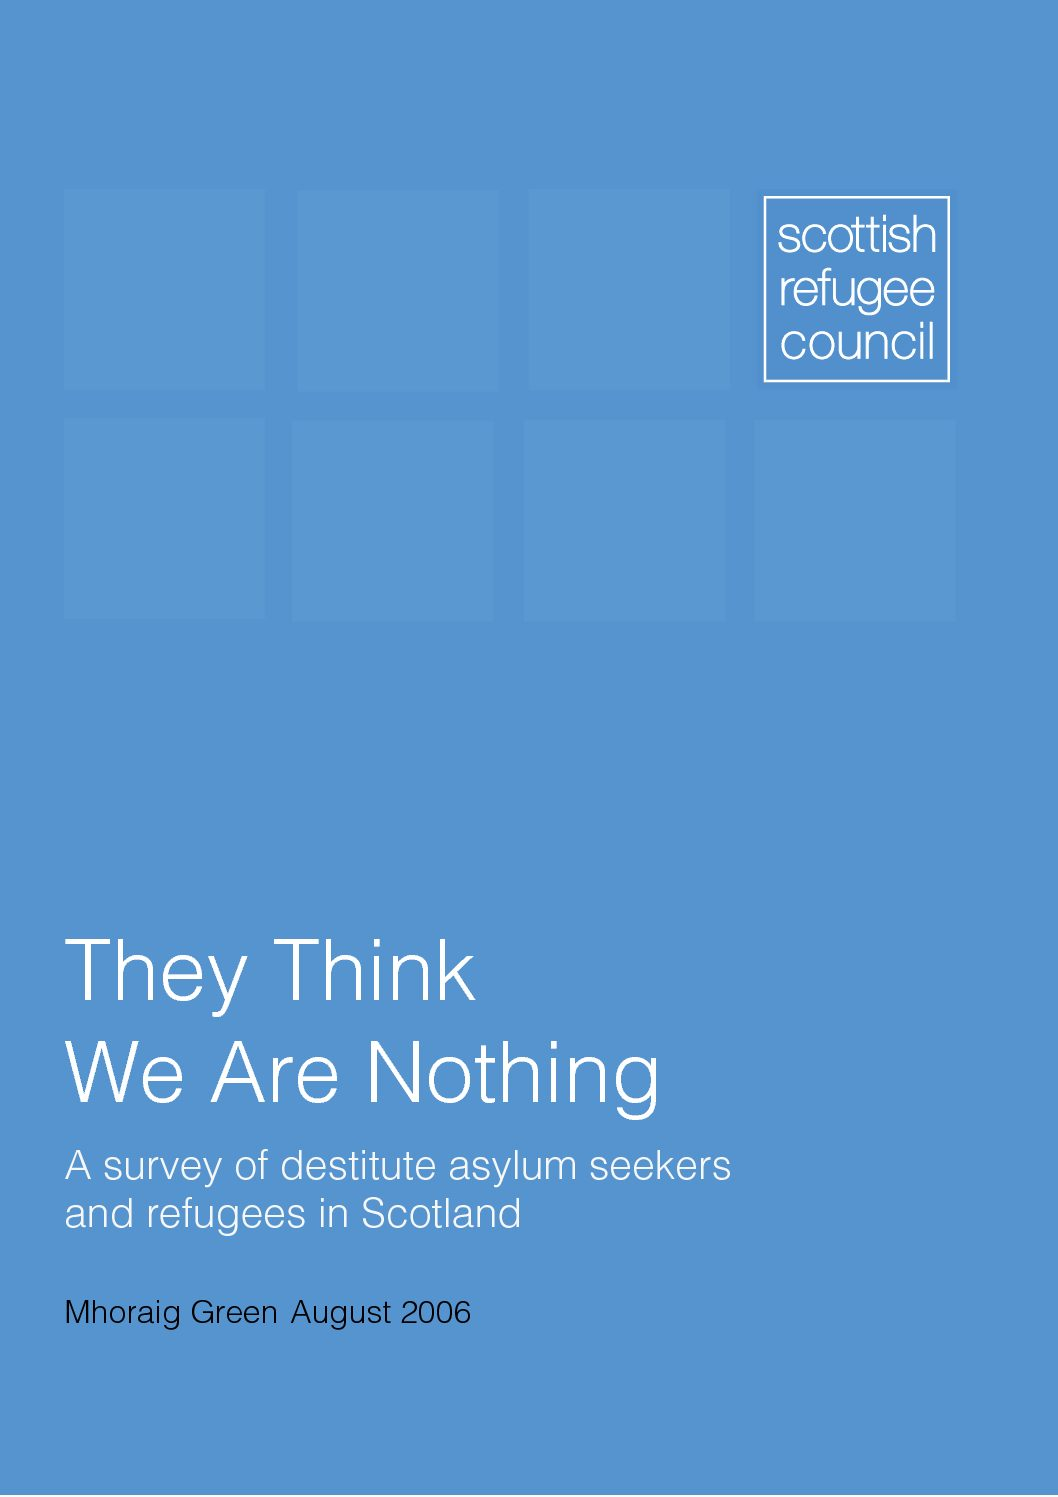 They-think-we-are-nothing-A-survey-of-destitute-asylum-seekers-and-refugees-in-Scotland-pdf